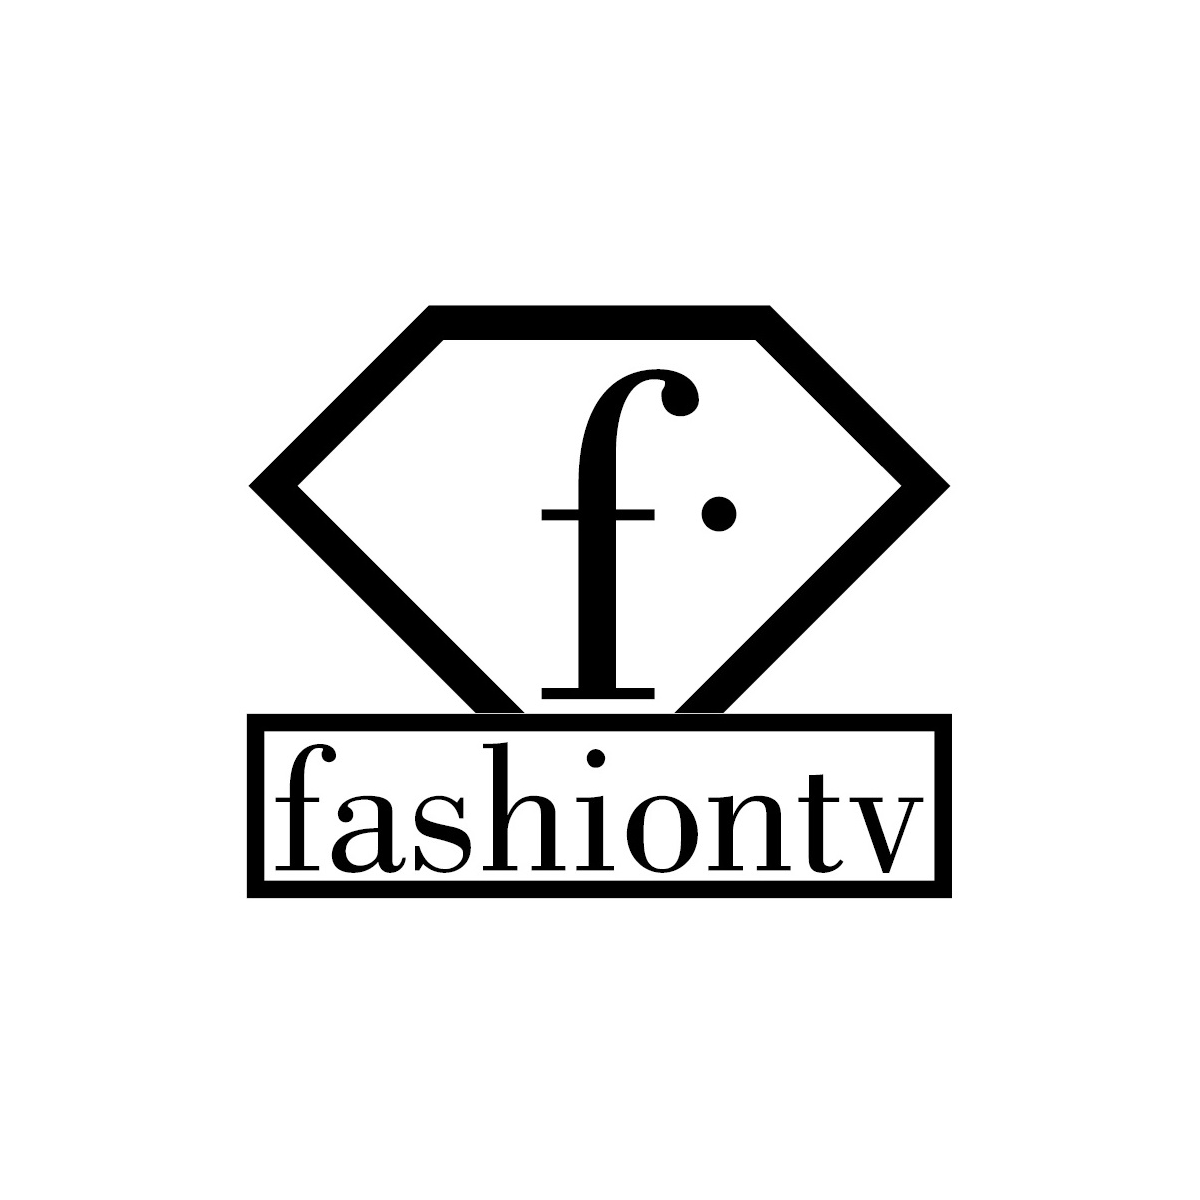 Fashion-logo-SO1